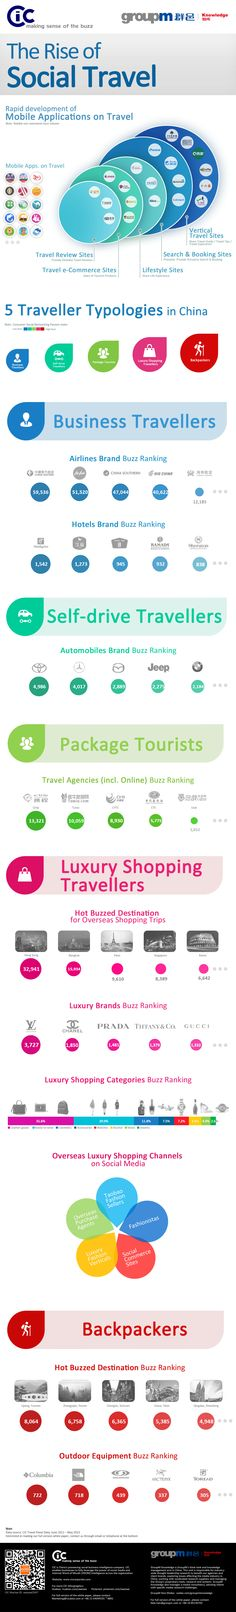 CIC - GroupM China : 2013 White Paper on Travellers - The Rise of Social Travel